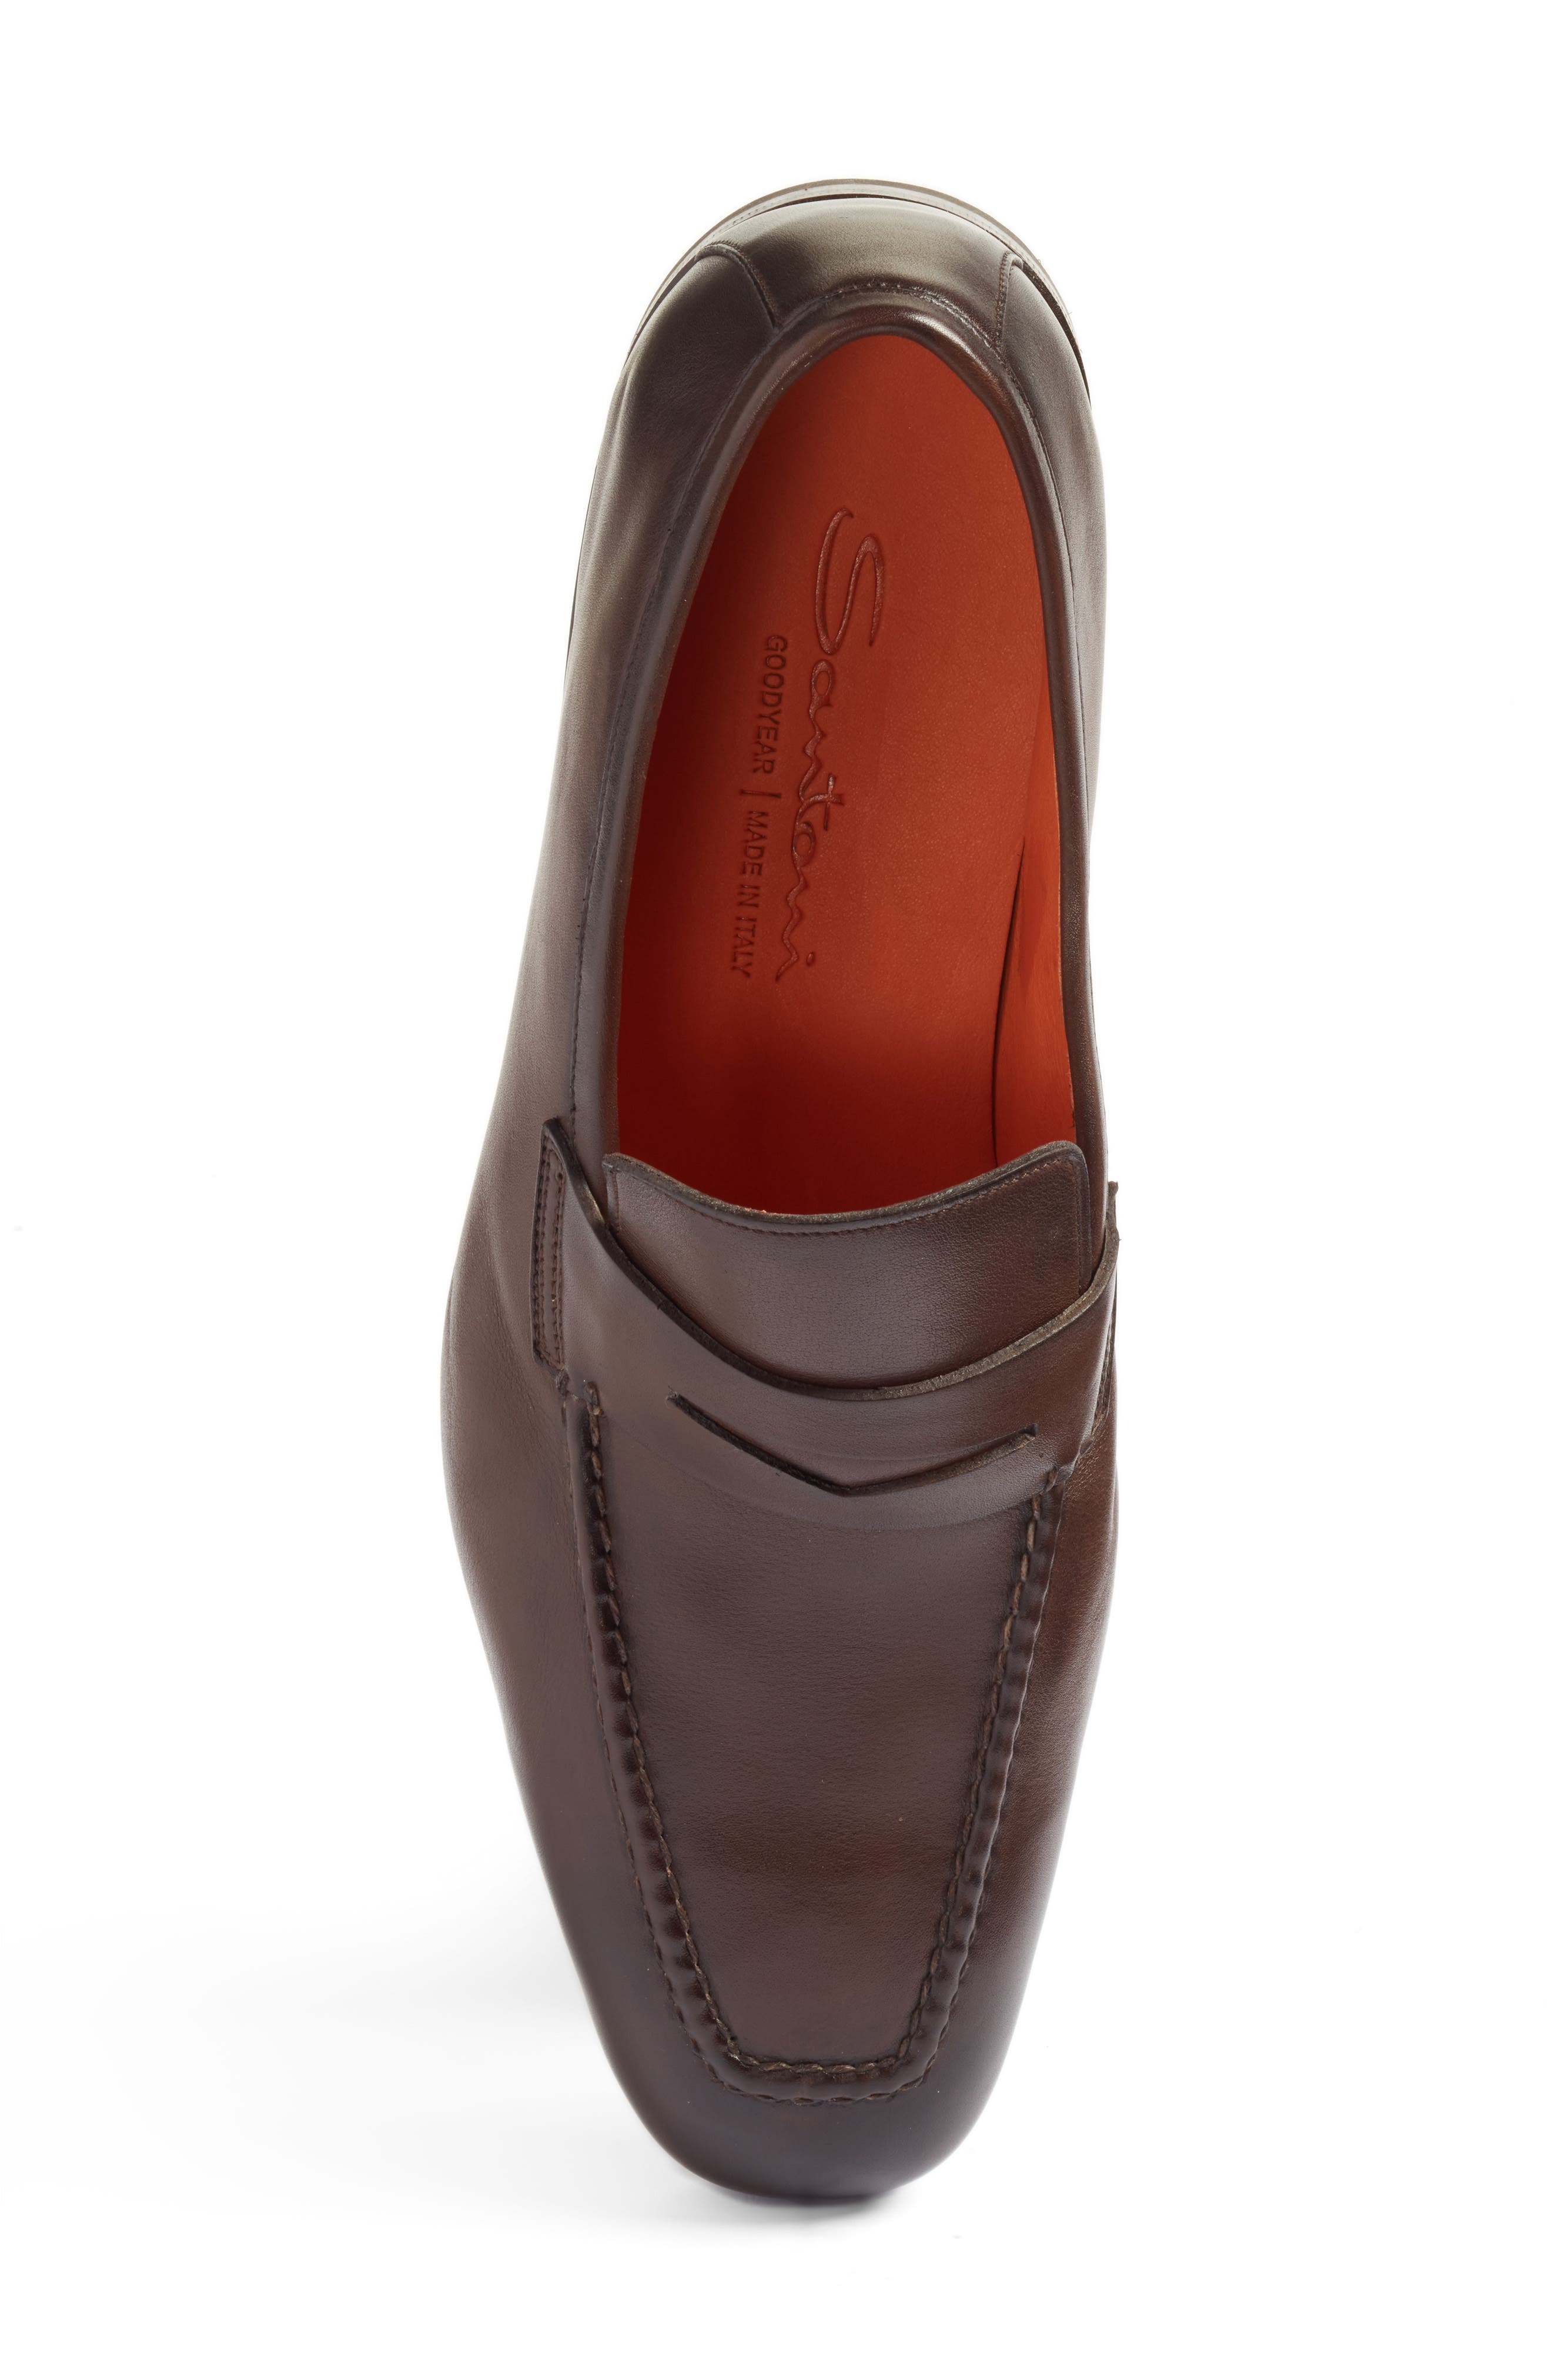 SANTONI, Fox Packable Penny Loafer, Alternate thumbnail 5, color, DARK BROWN LEATHER